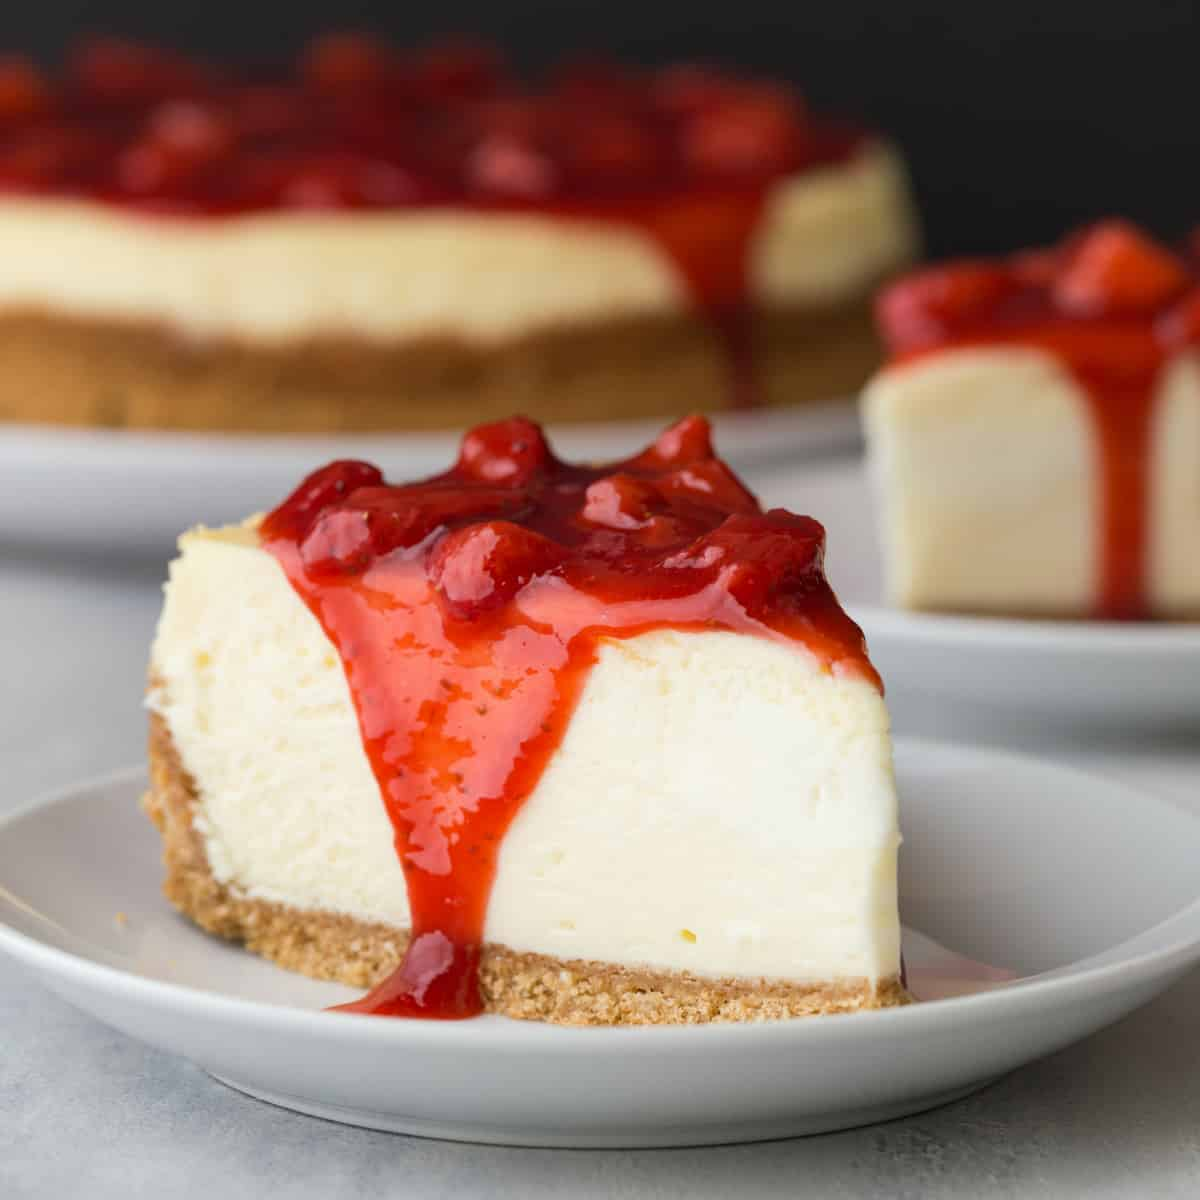 Strawberry-Cheesecake-Recipe-Image